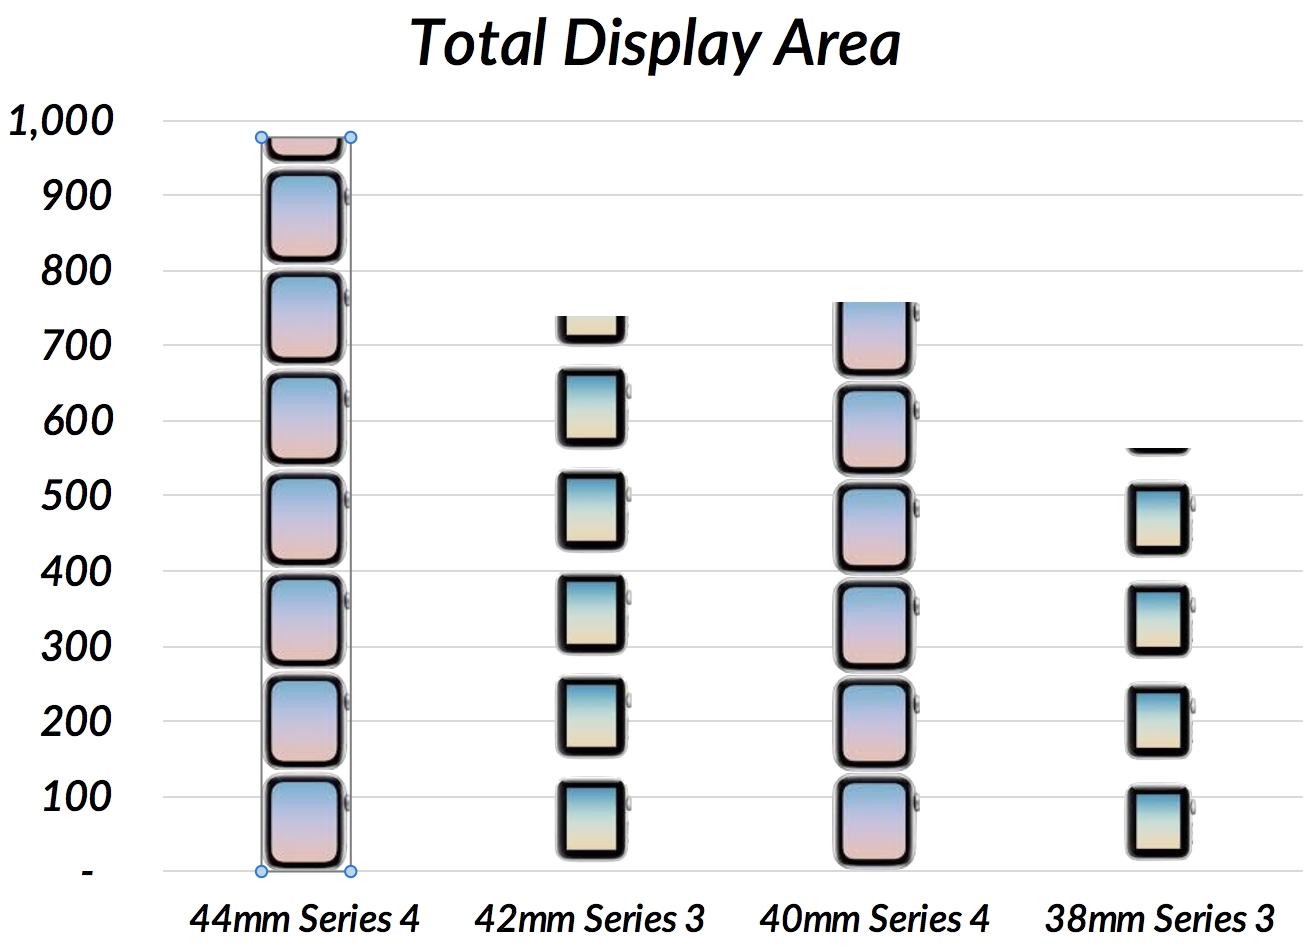 Stacked bar chart for Apple Watch sizes